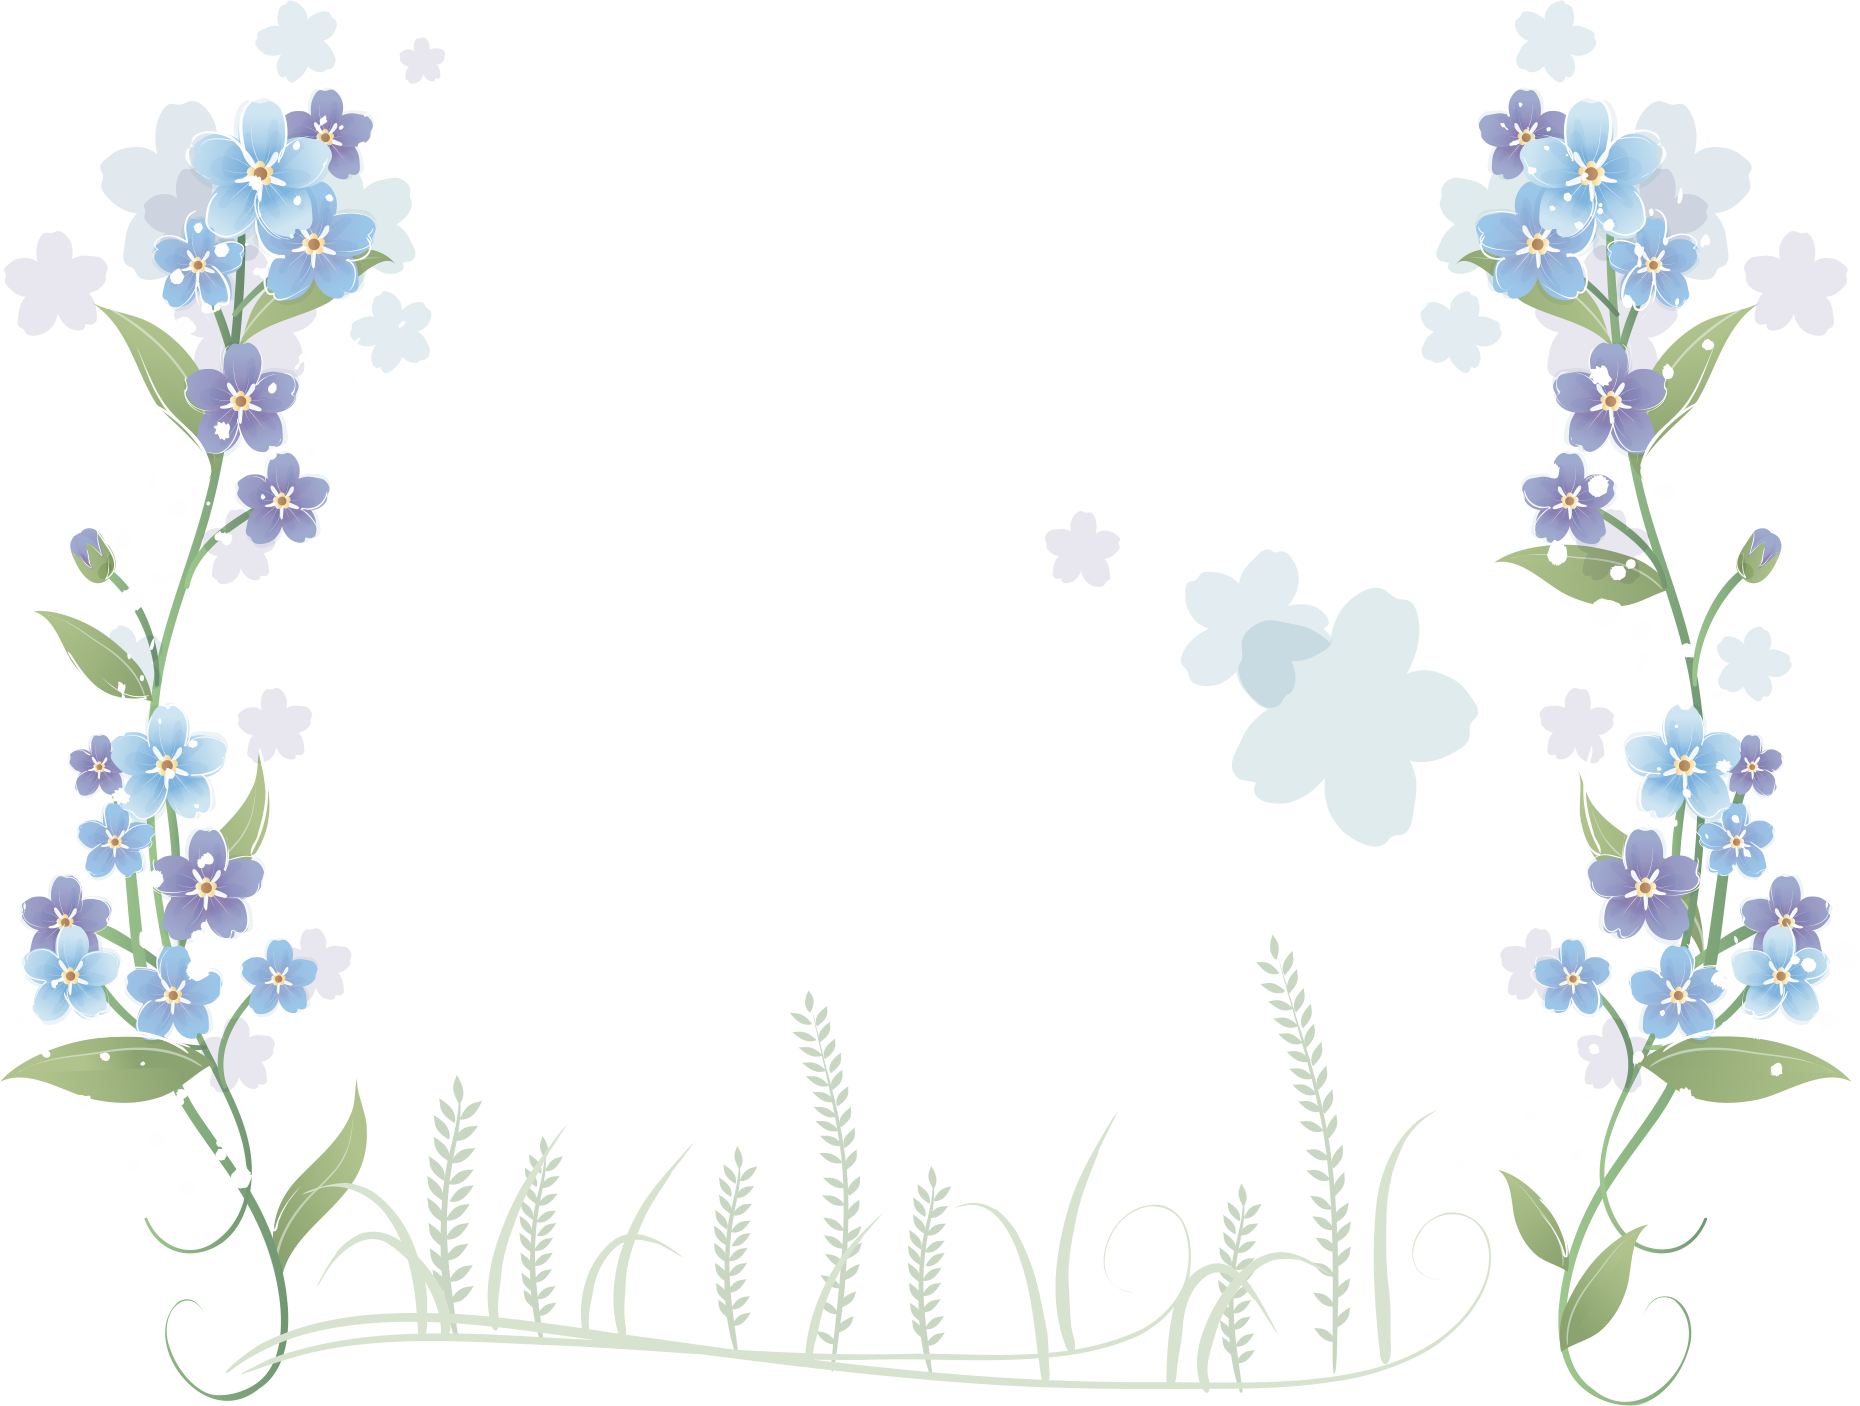 Free Flowers Clipart - Clip Art Pictures - Graphics - Illustrations